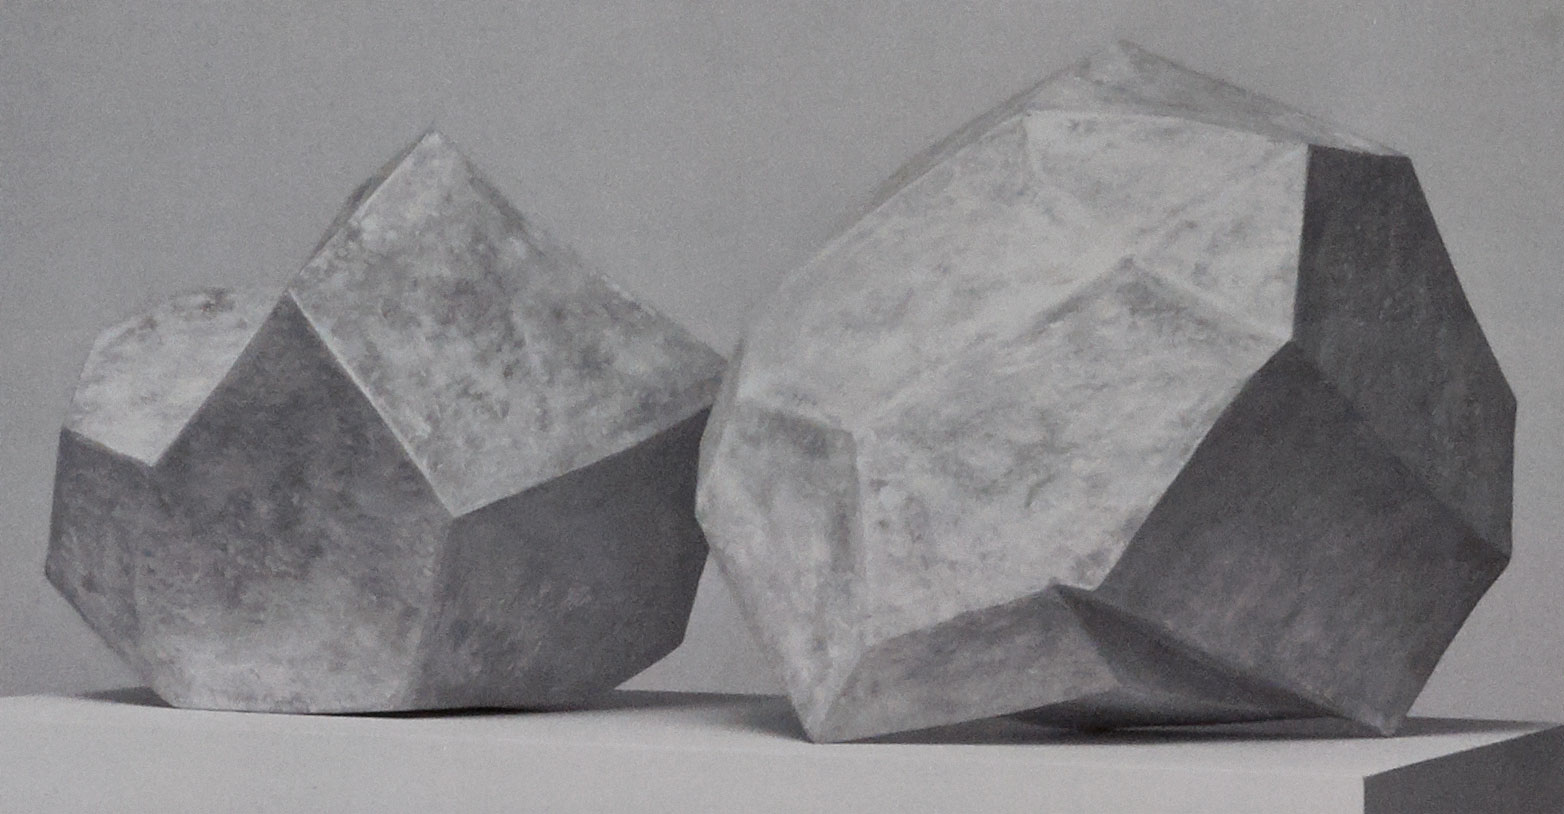 Casbon. White Shapes, 2010. Earthenware, slip, and wax, 32 x 24 x 26 in. Photograph by John Carlano.